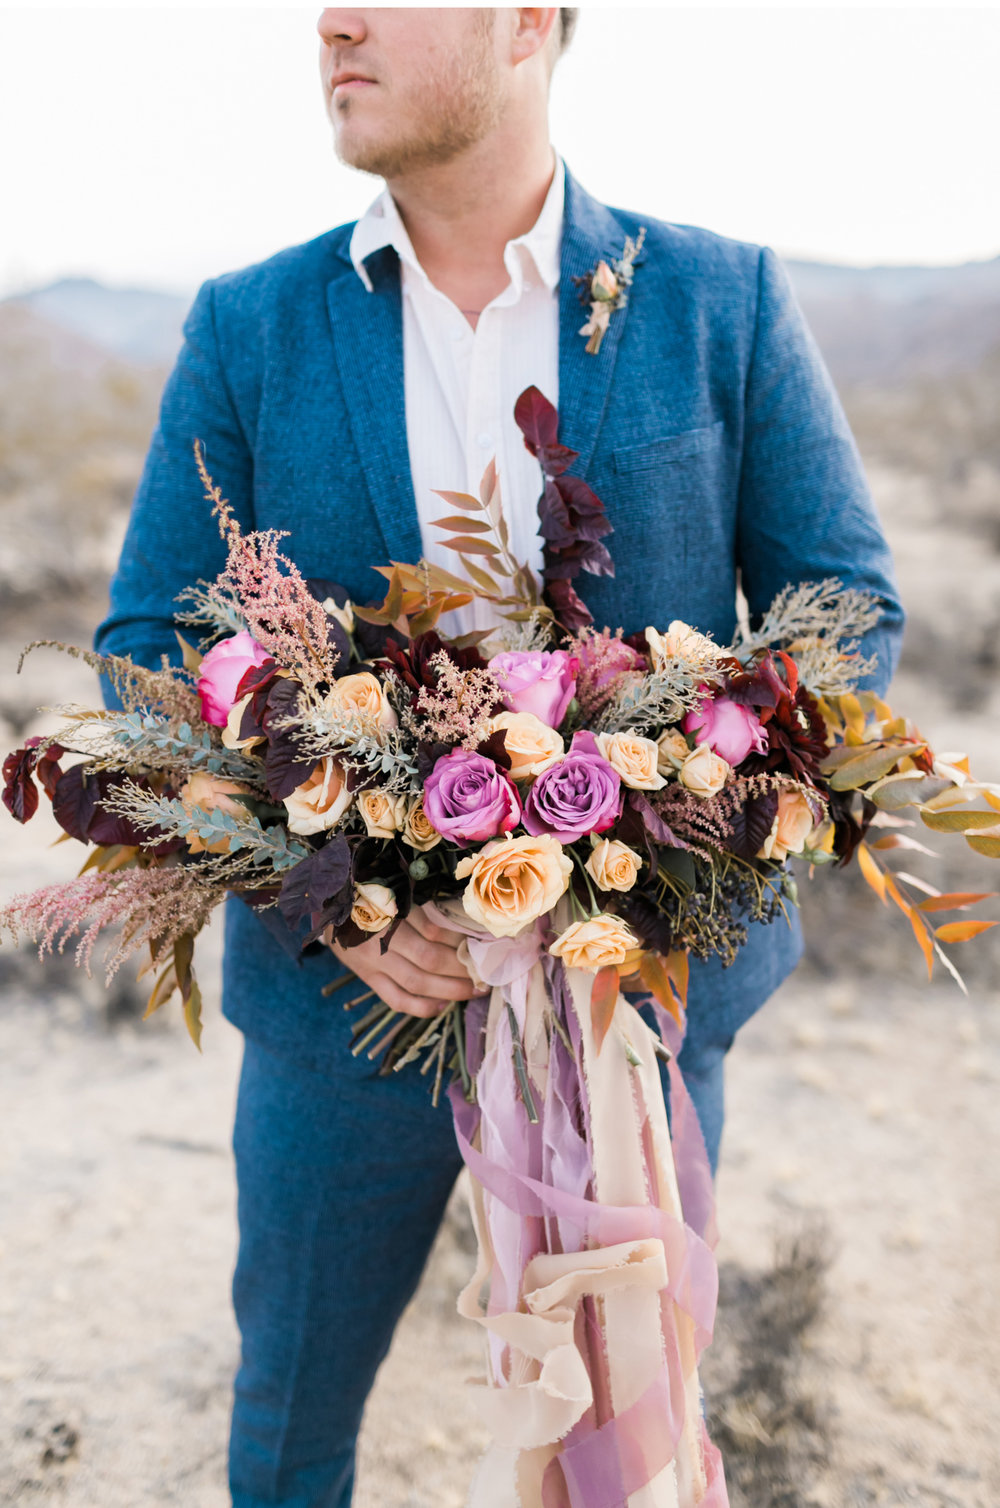 Joshua-Tree-Wedding-Natalie-Schutt-Photography-100-Layer-Cake_03.jpg